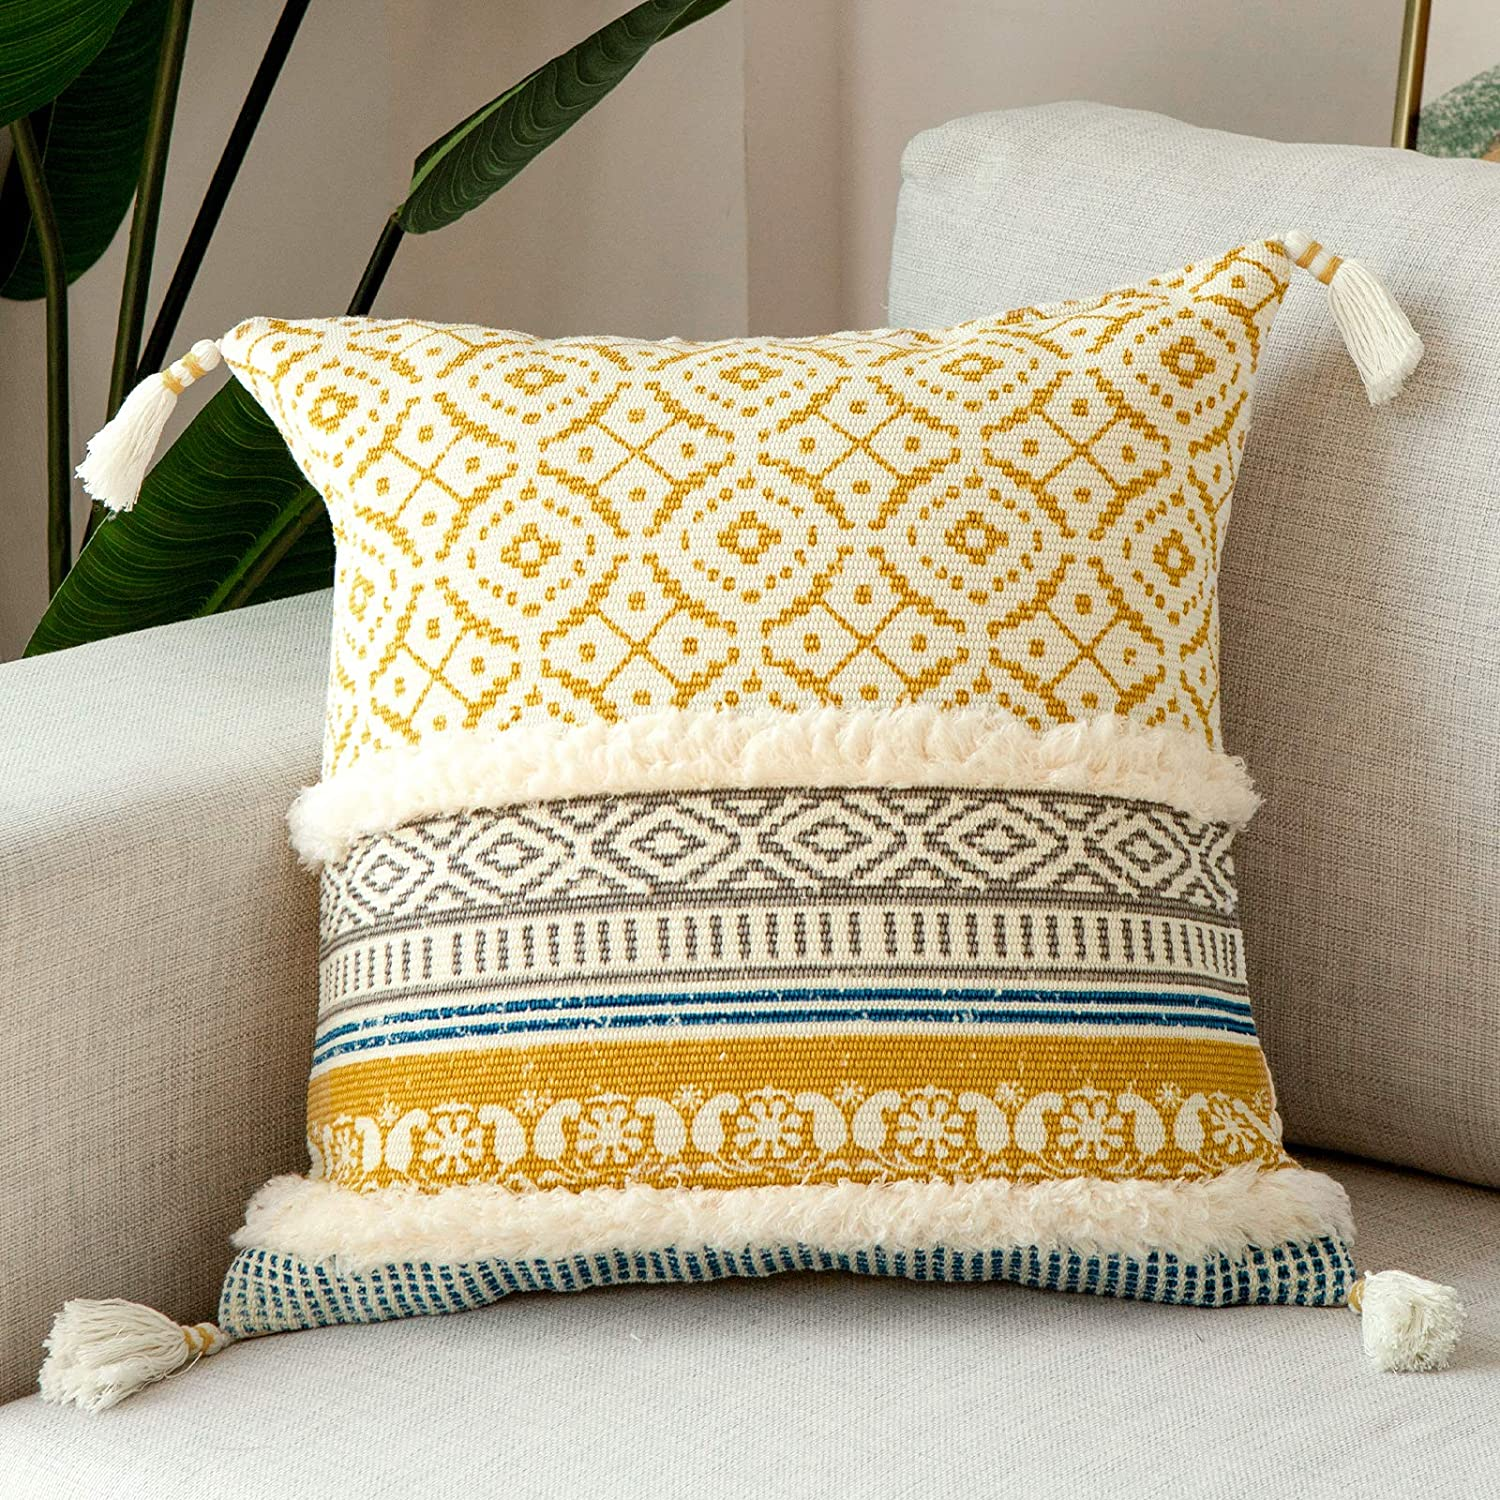 blue page Boho Tufted Decorative Throw Pillow Covers for Couch Sofa Bed - Modern Moroccan Style Pillow Cases with Tassels, Accent Decor Pillow for Bedroom Living Room, 18x18 Inches, Yellow